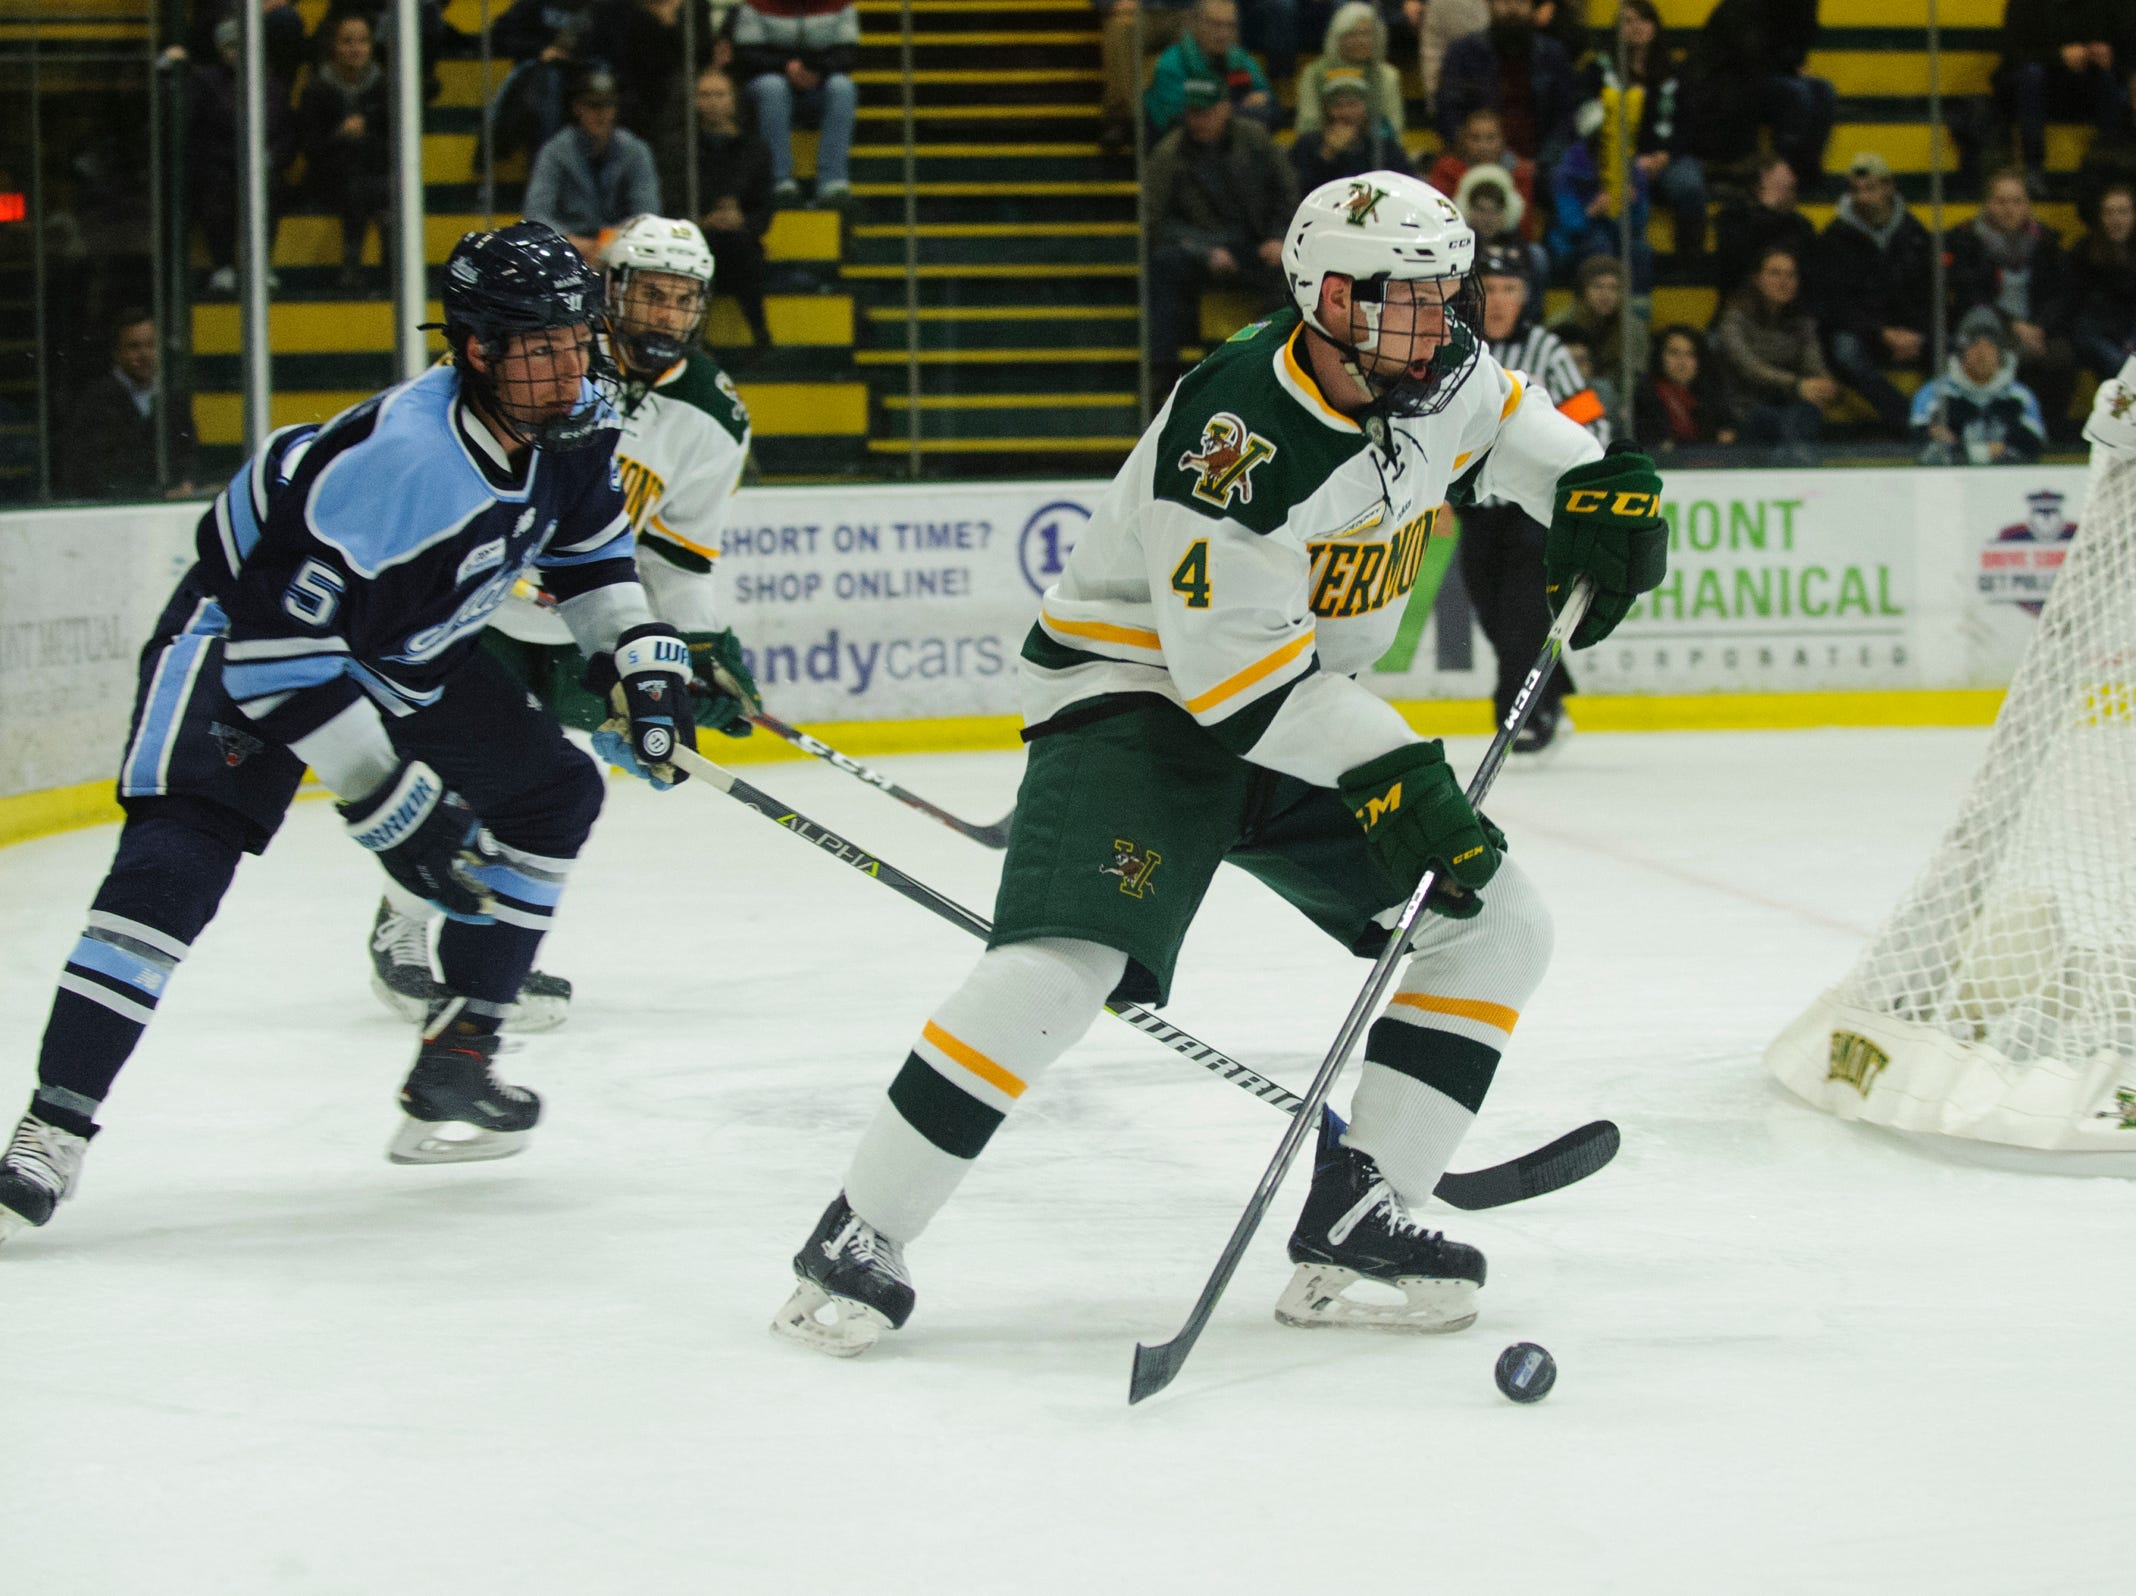 Vermont defenseman Owen Grant (4) looks to pass the puck during the men's hockey game between the Mine Black Bears and the Vermont Catamounts at Gutterson Field House on Friday night November 30, 2018 in Burlington.